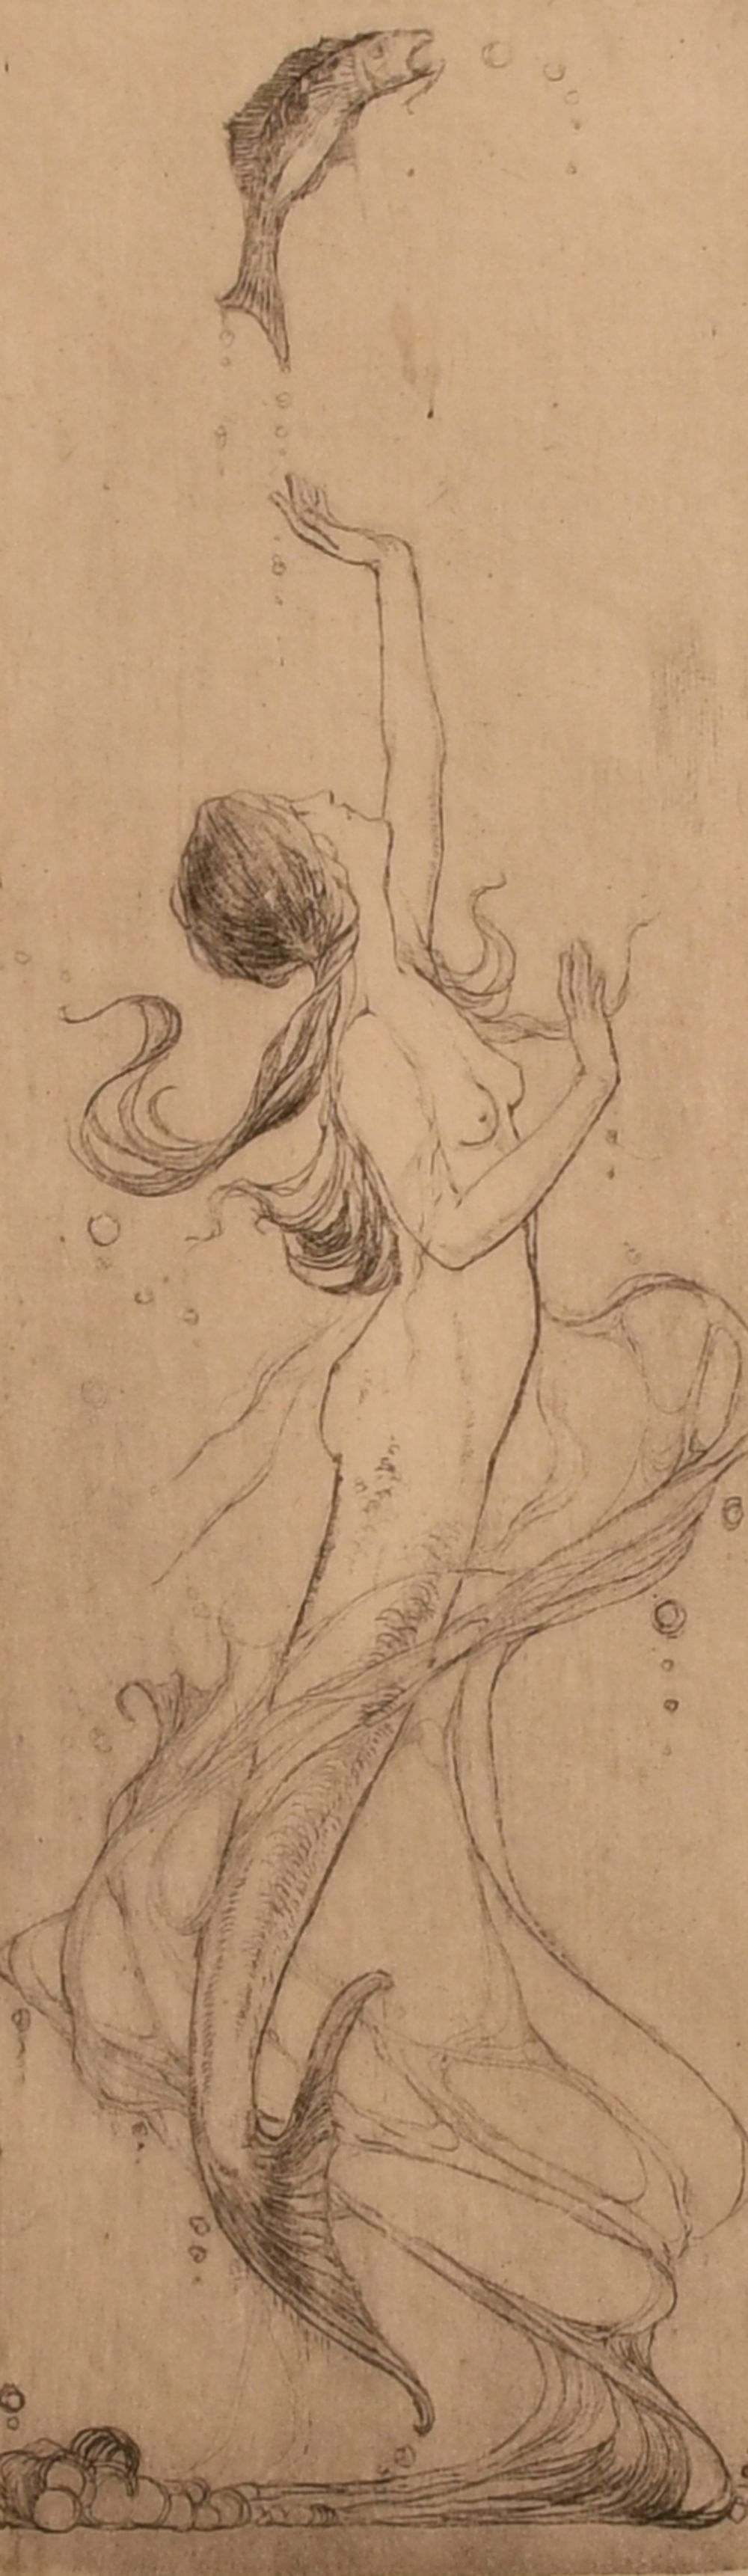 """An art nouveau etching of a mermaid with a fish, indistinctly signed in pencil, 7.5"""" x 2.5""""."""